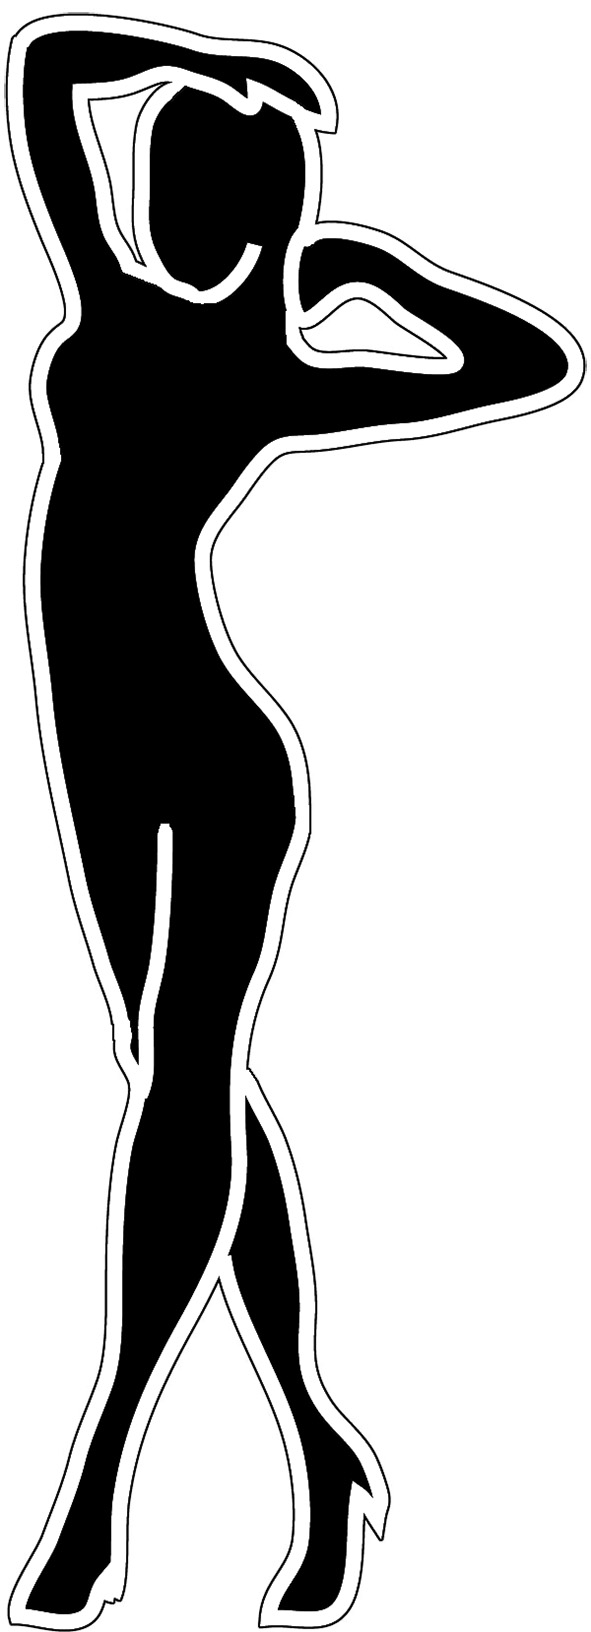 591x1632 Free Silhouettes Of Women, Hanslodge Clip Art Collection